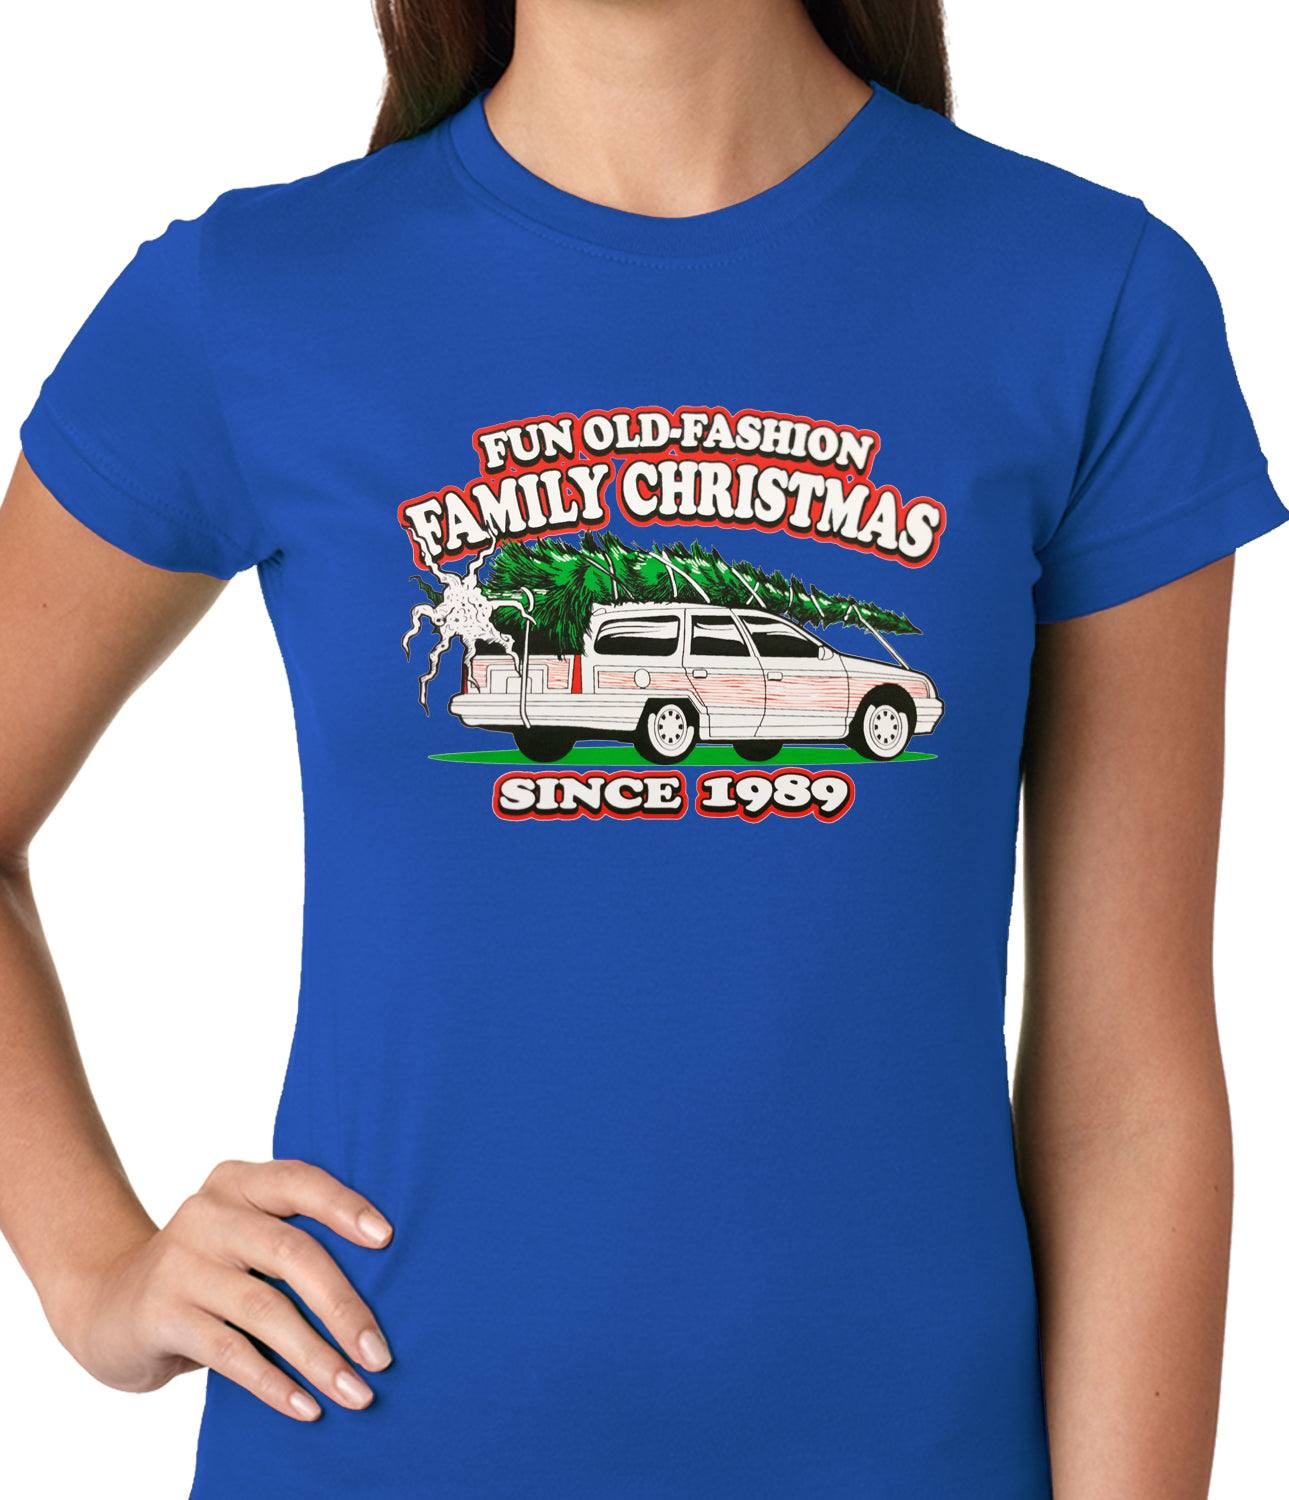 Fun Old-Fashioned Family Christmas Since 1989 Ladies T-shirt